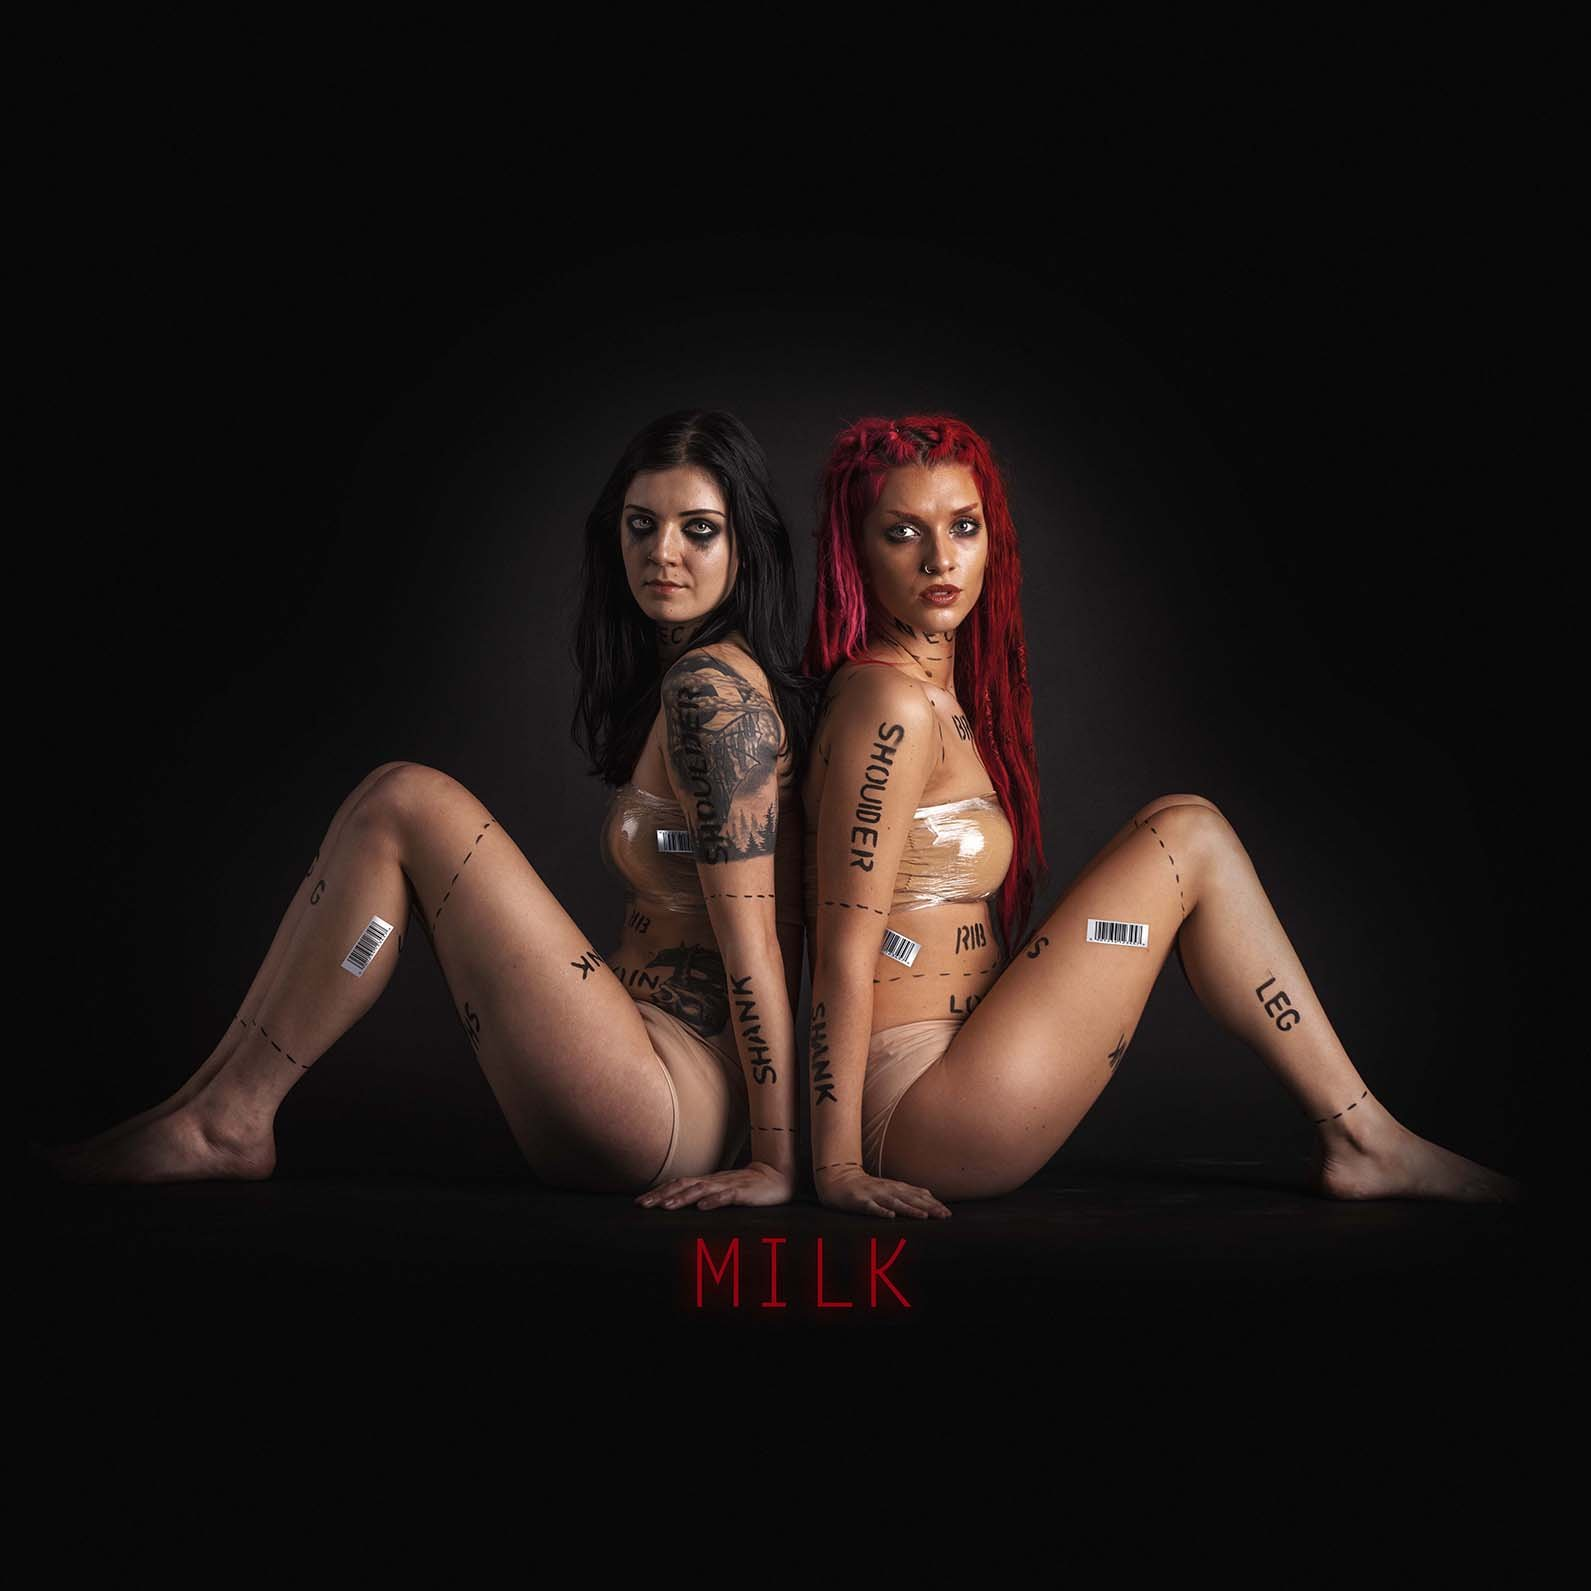 HANDS OFF GRETEL reveal a new video single for MILK